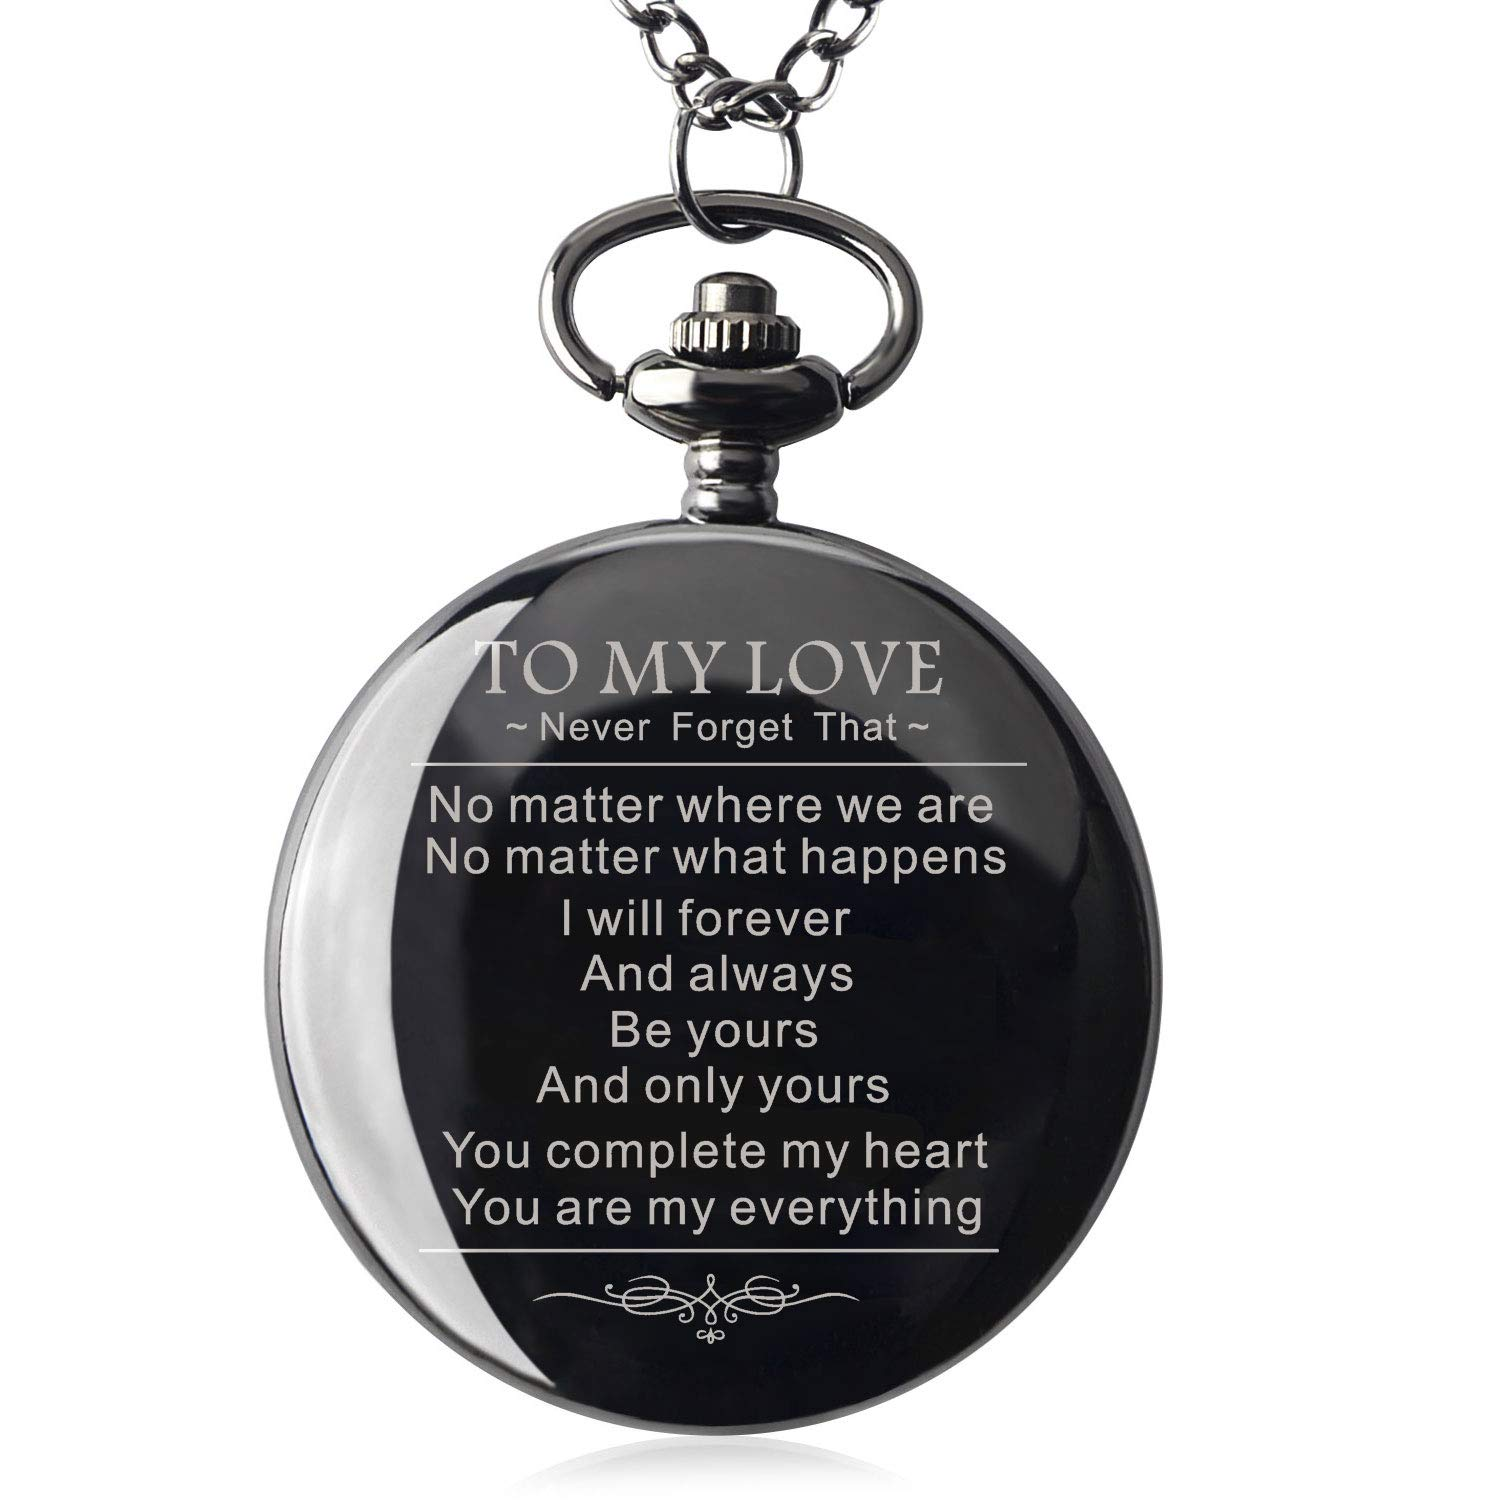 Boyfriends Gifts for Valentine's Day, Anniversary, Birthday Graduation Christmas Mens Personalized Mechanical Pocket Watch with Gift Box (to My Love) by Ginasy